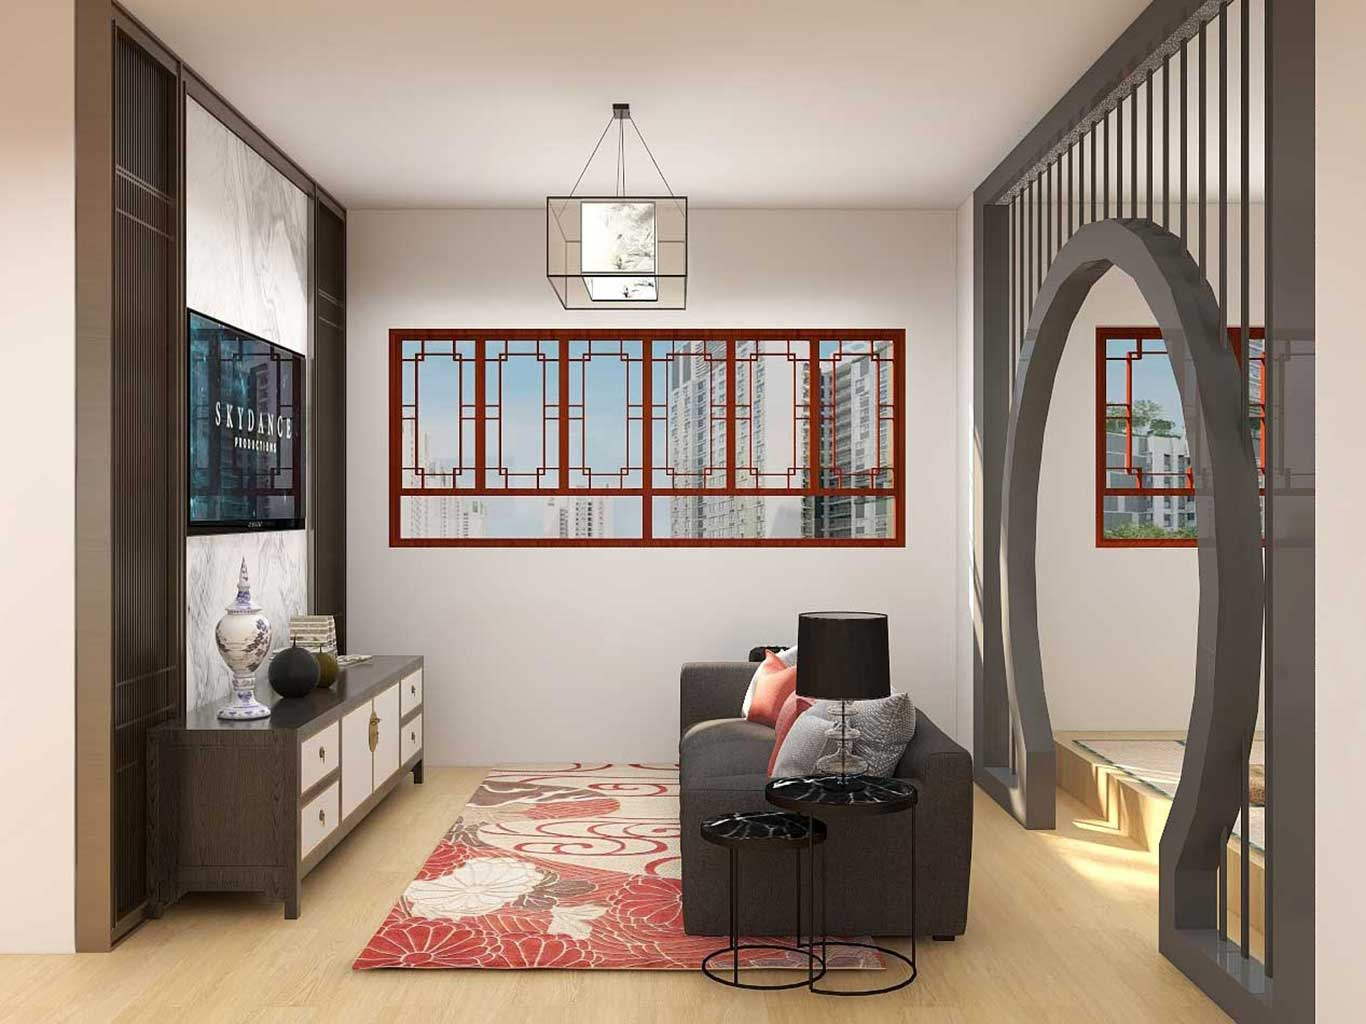 Oriental Chinese living room with latticework wall partition, chinese style windows, and lantern style light